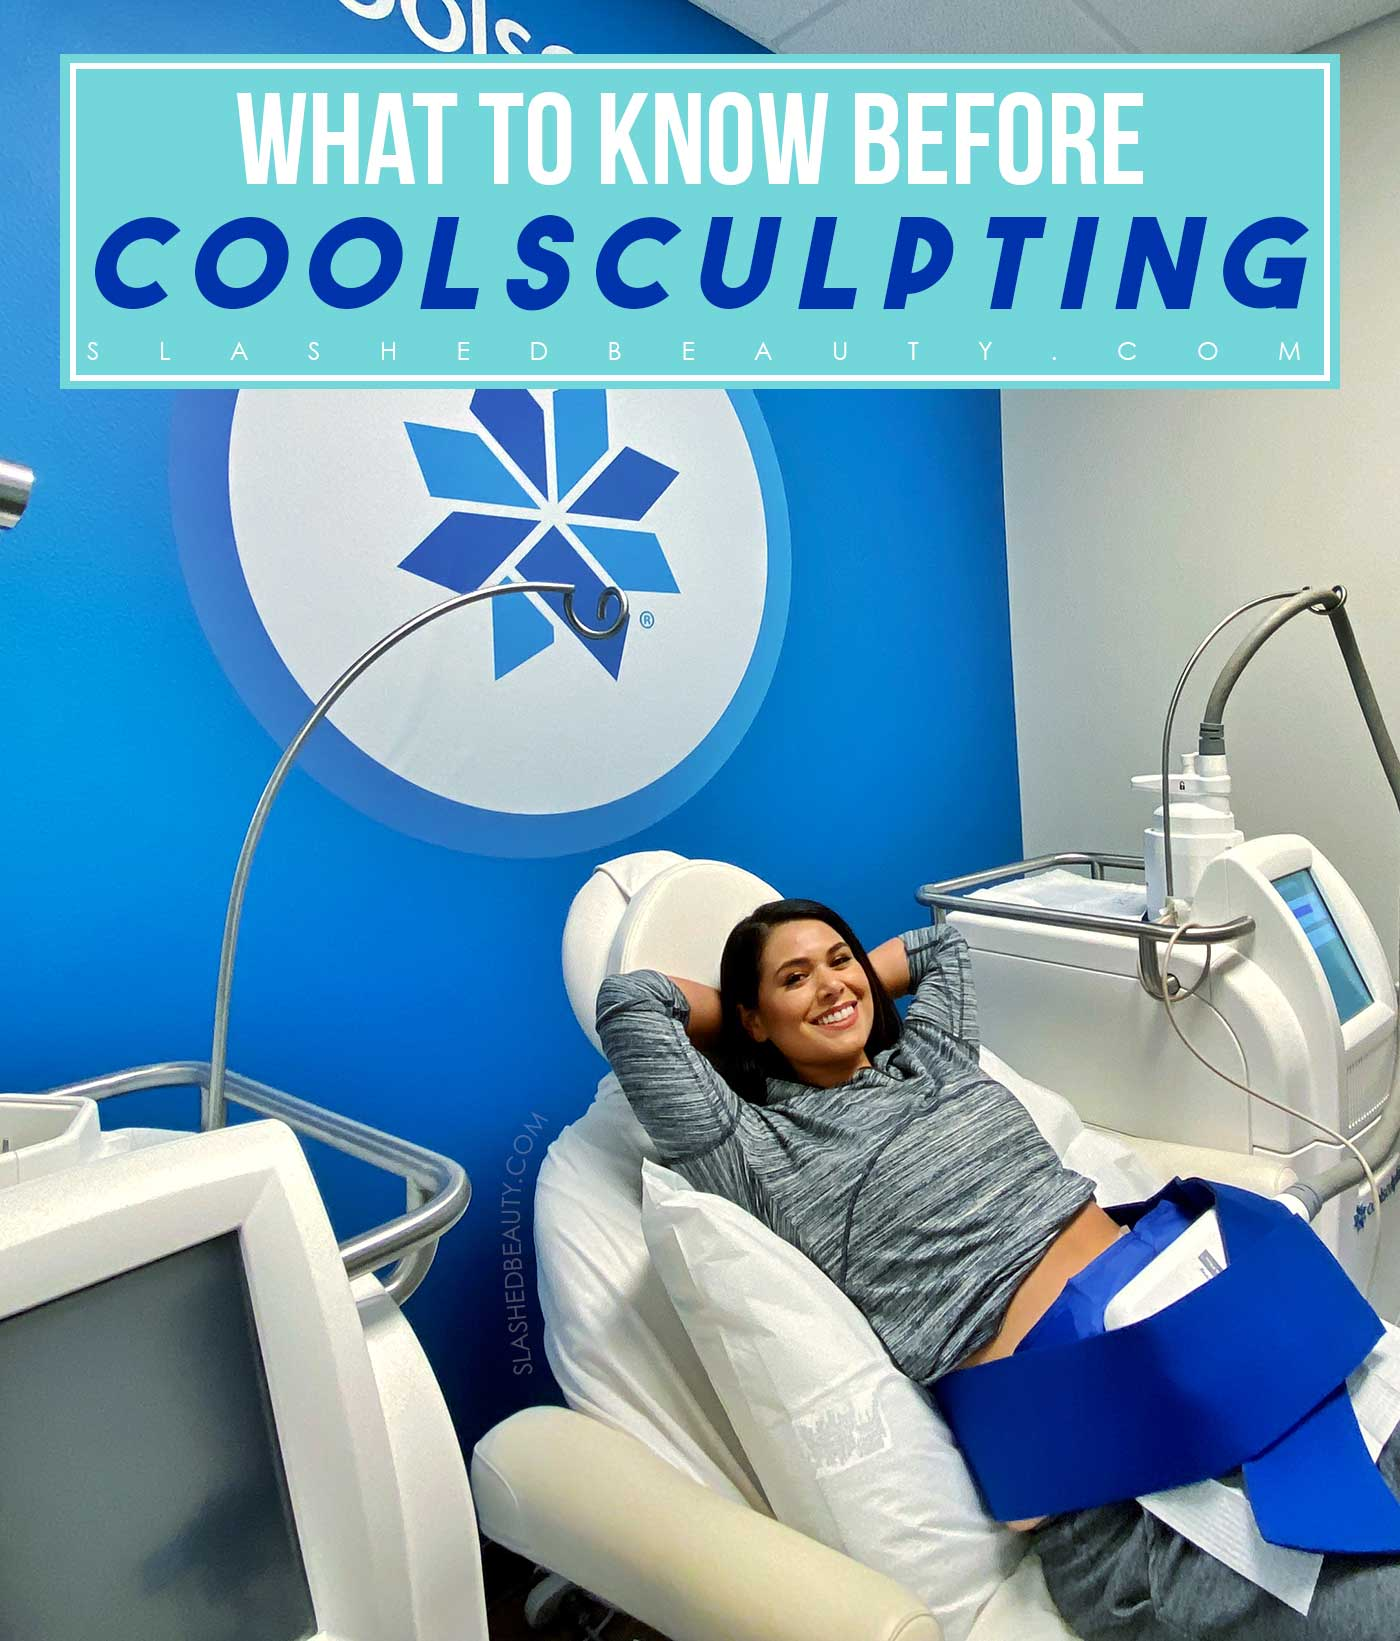 Does Coolsculpting Work? Before & Afters, How Much Does It Cost, How Long Does it Take? | Slashed Beauty